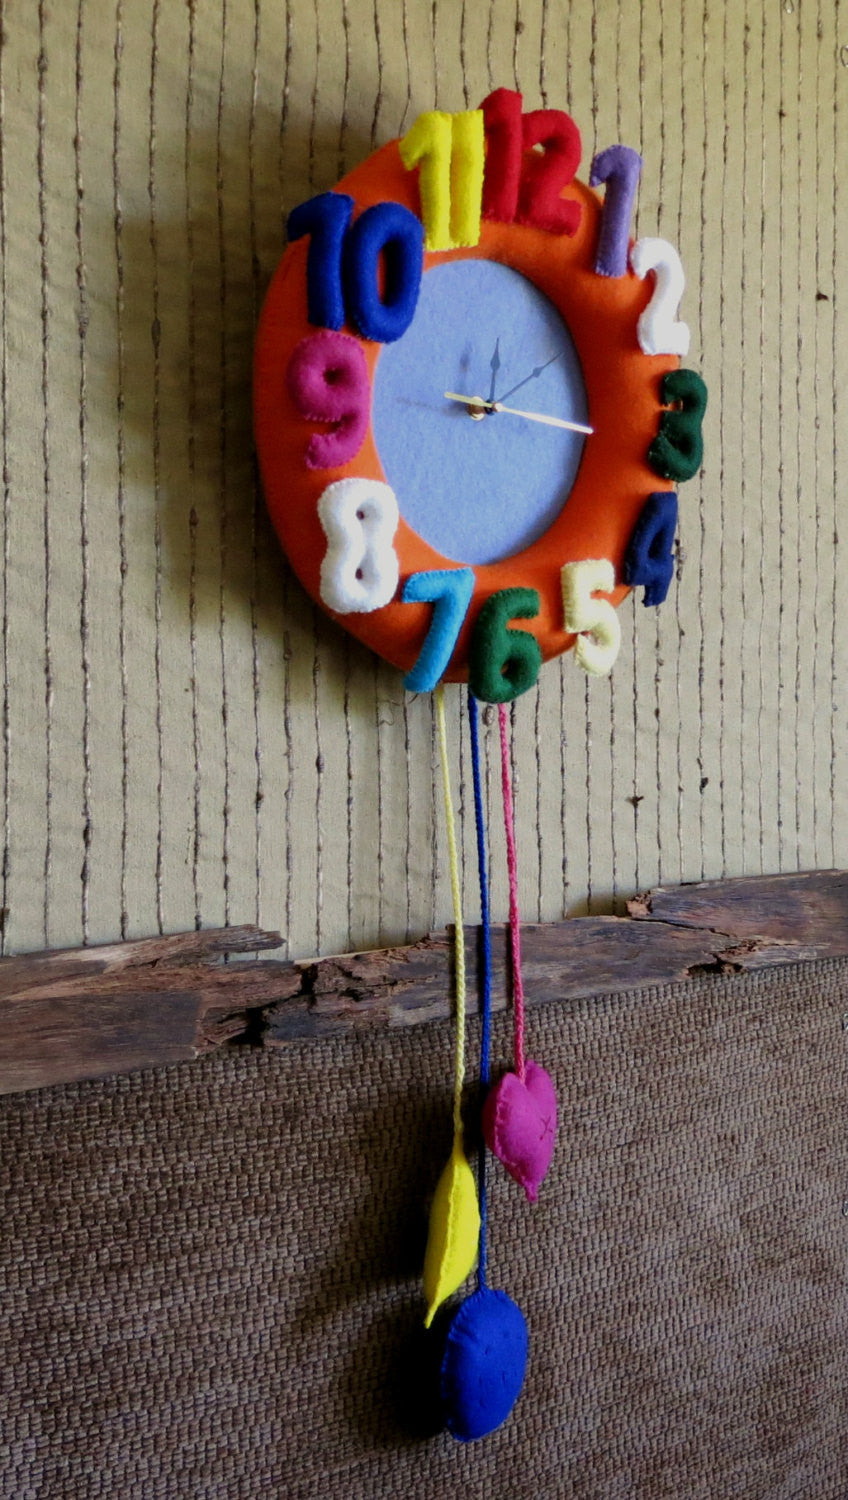 Nursery-Felt-Wall-Clock-Nchanted-Gifts